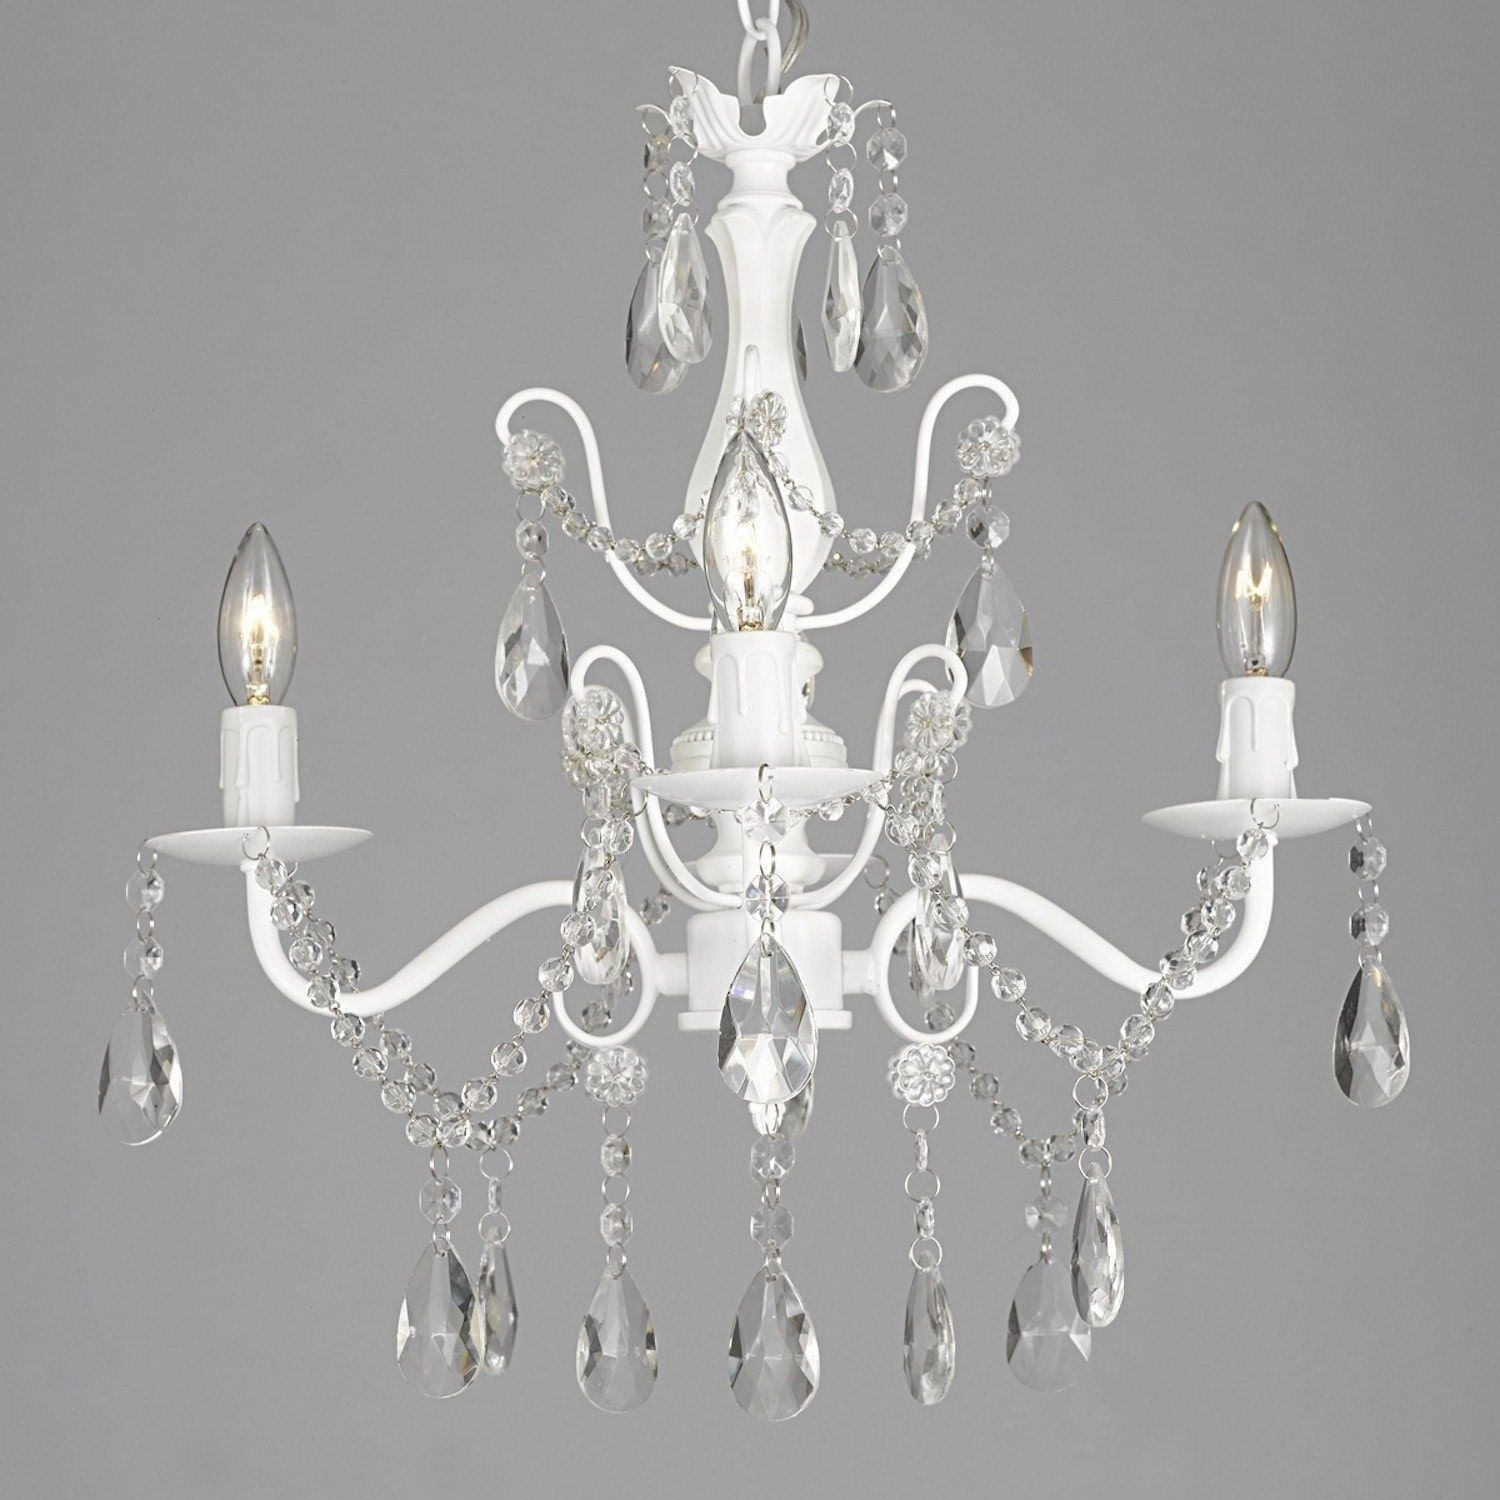 "Wrought Iron and Crystal 4 Light White Chandelier H 14"" X W 15"